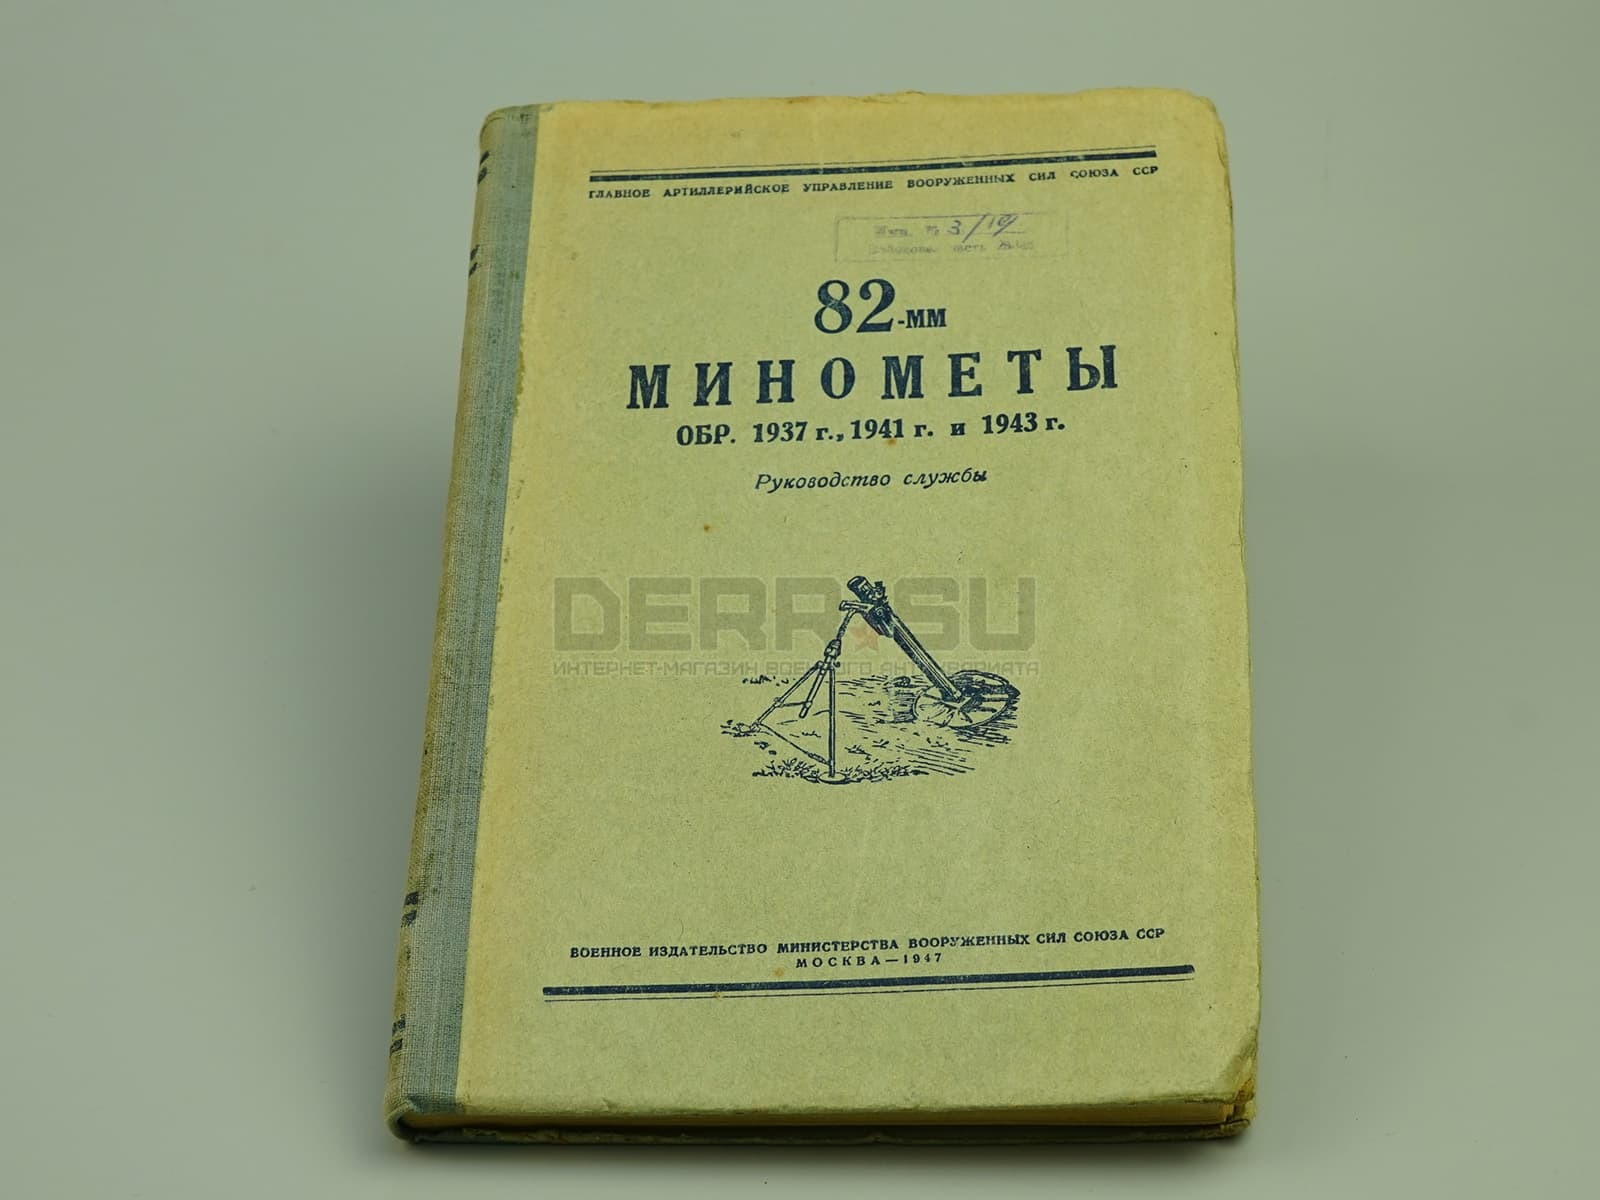 https://static1.derr.su/2511-thickbox_default/kniga-rukovodstvo-sluzhby-82-mm-minomety-obr-1937-1941-i-1943-gg.jpg